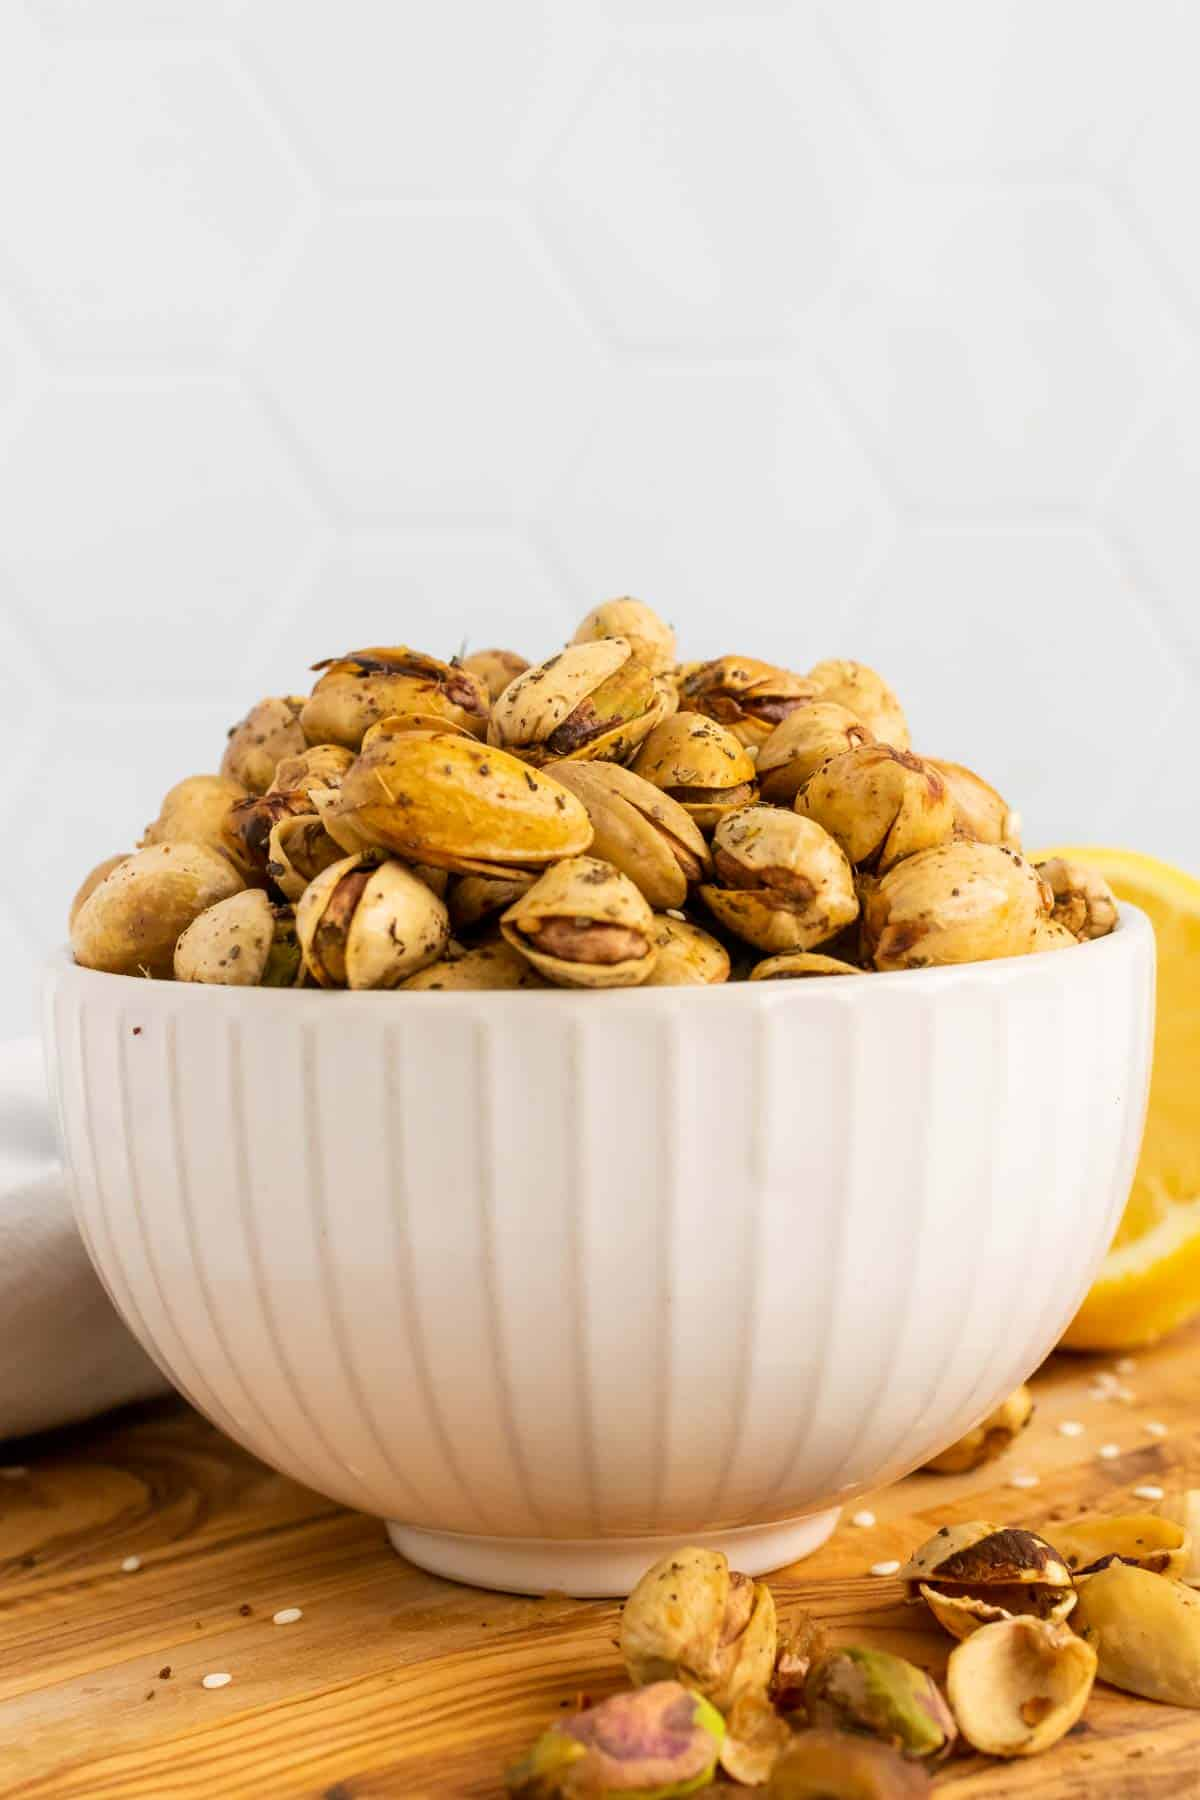 Bowl of nuts seen from the side